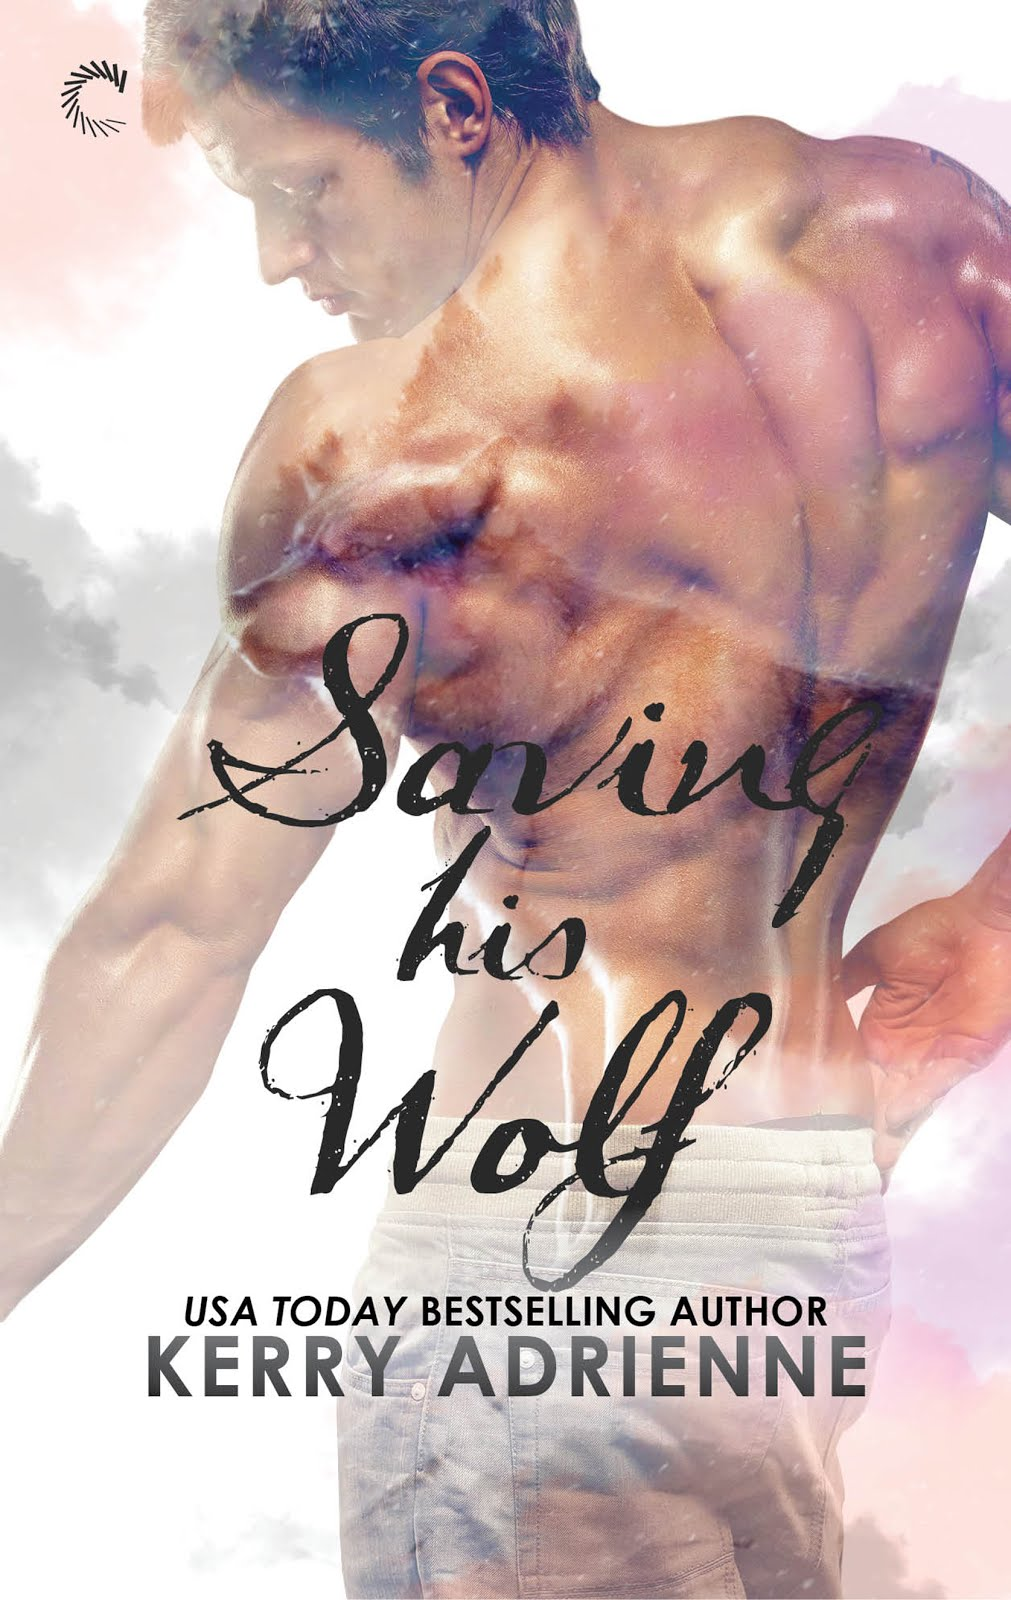 A riveting novella in the Shifter Wars series!